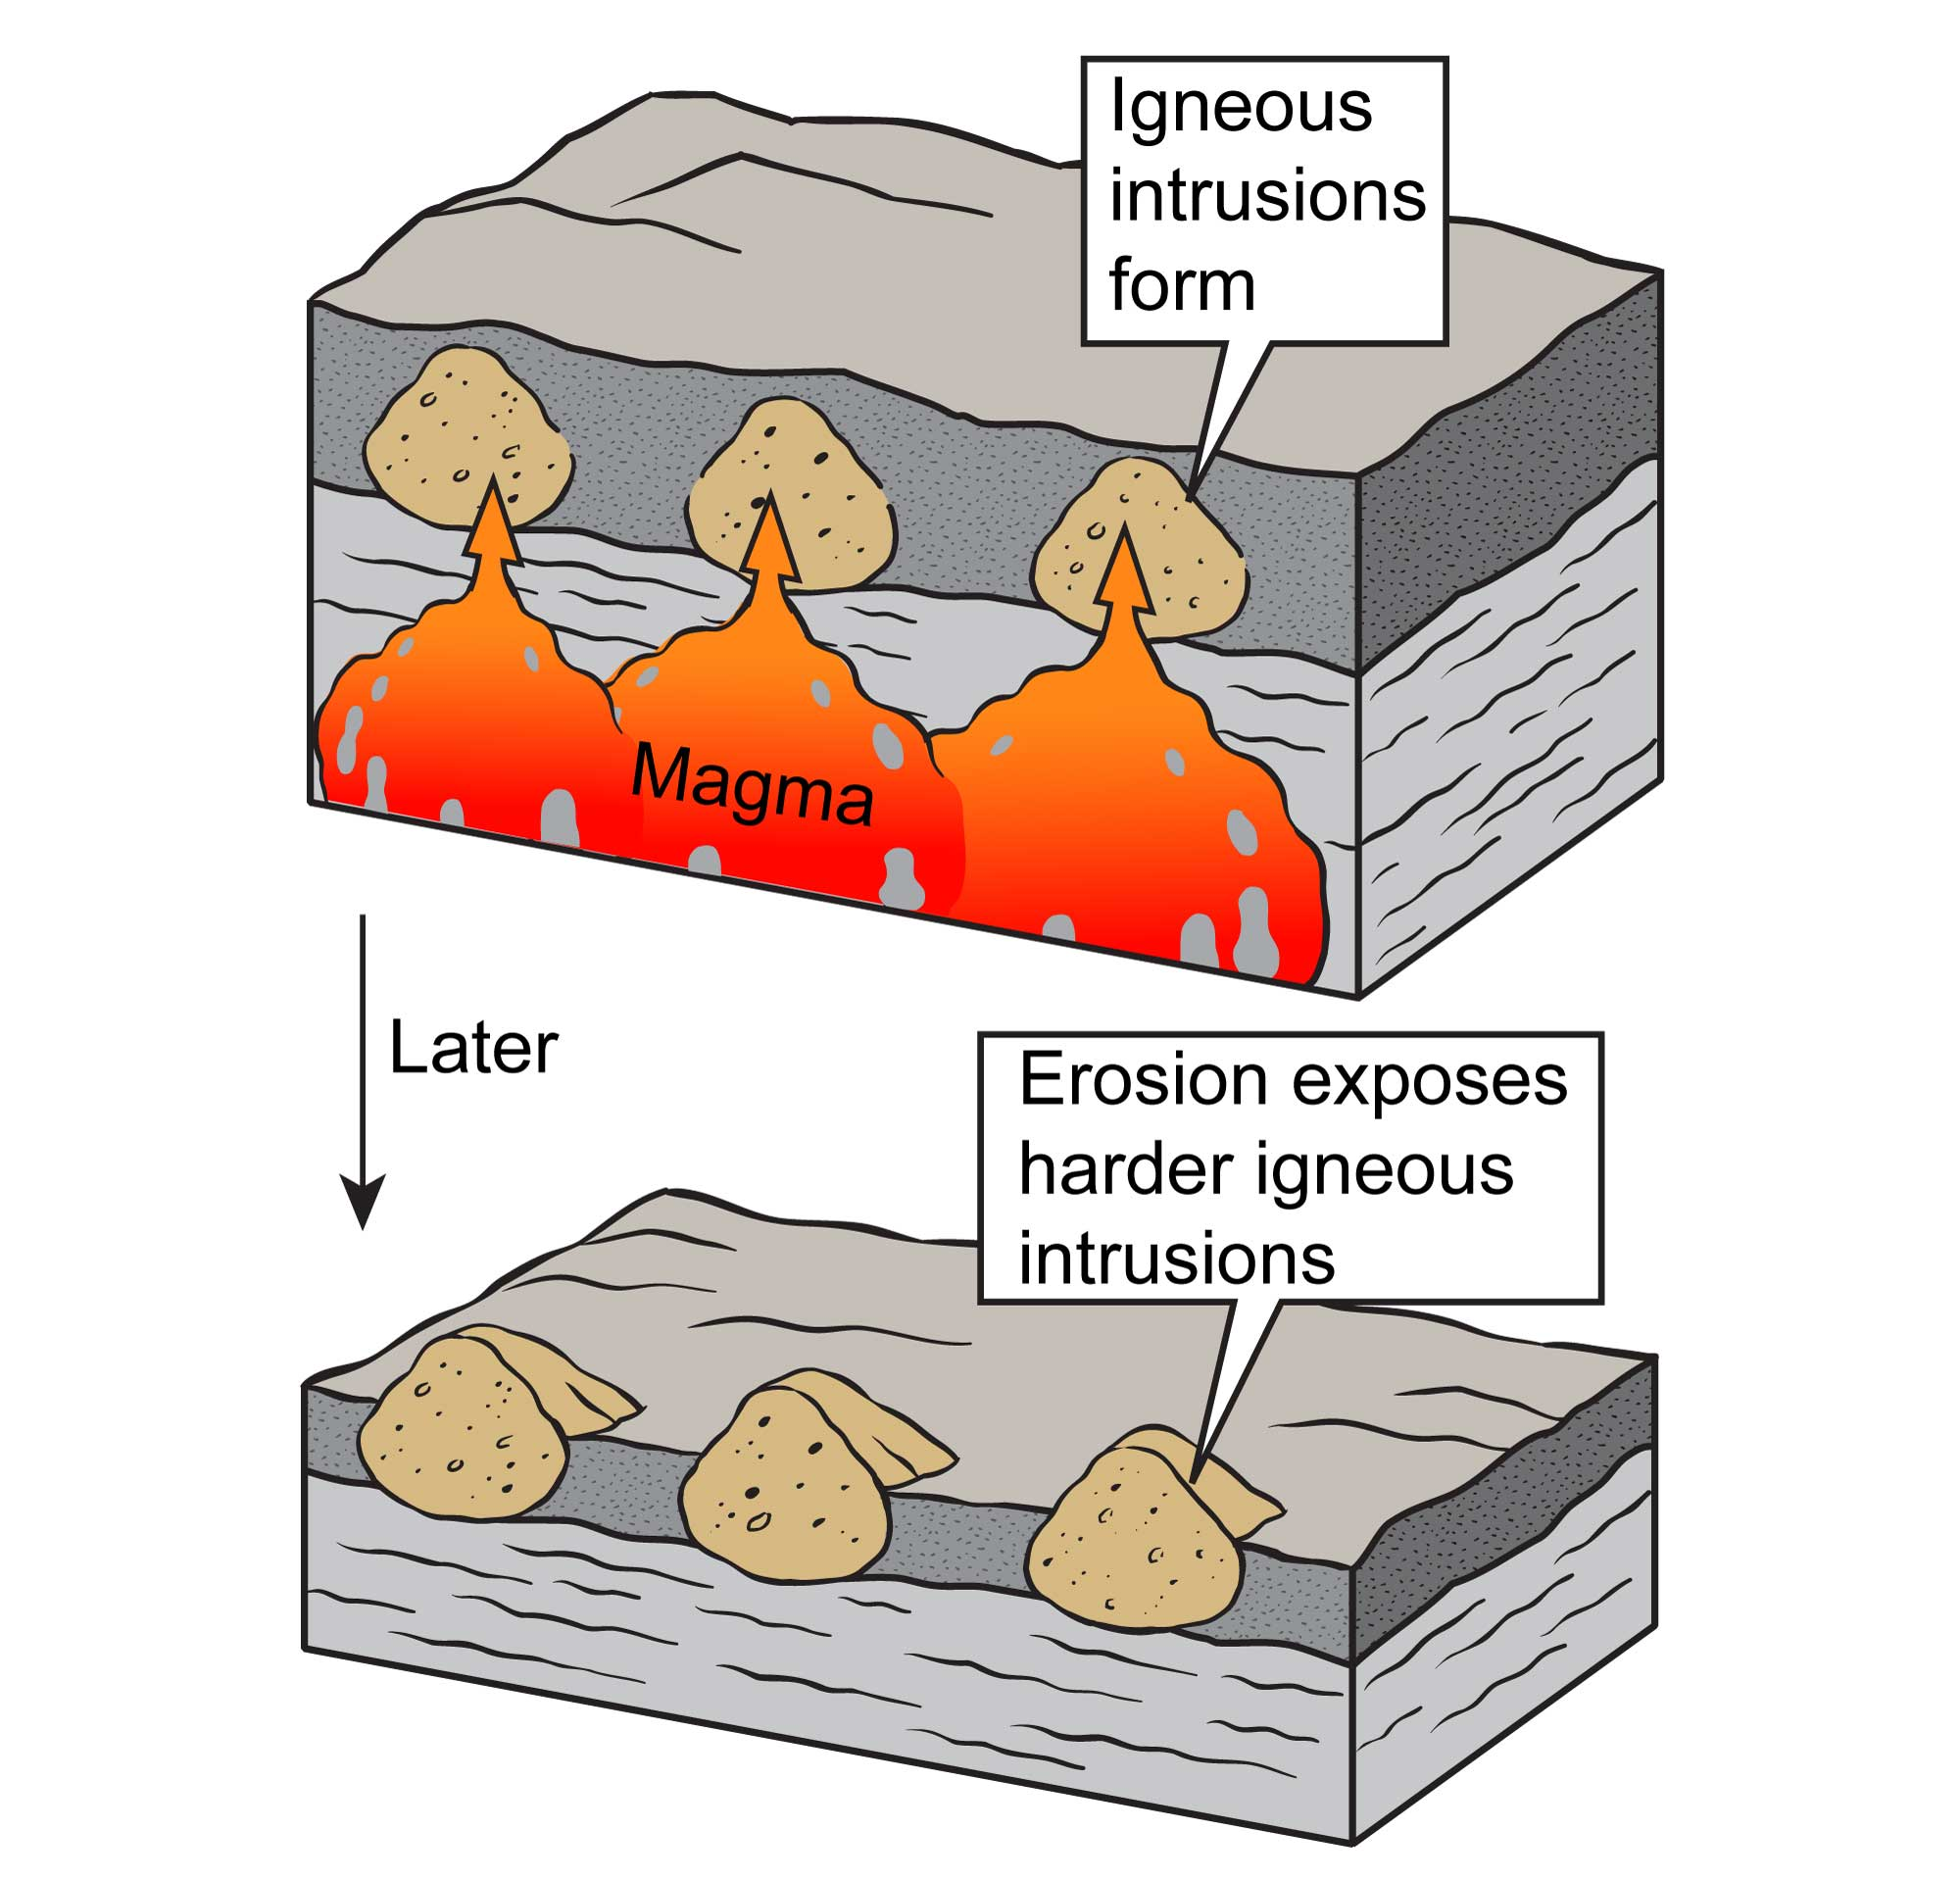 Simplified illustrations show how igneous intrusions form and persist over time.